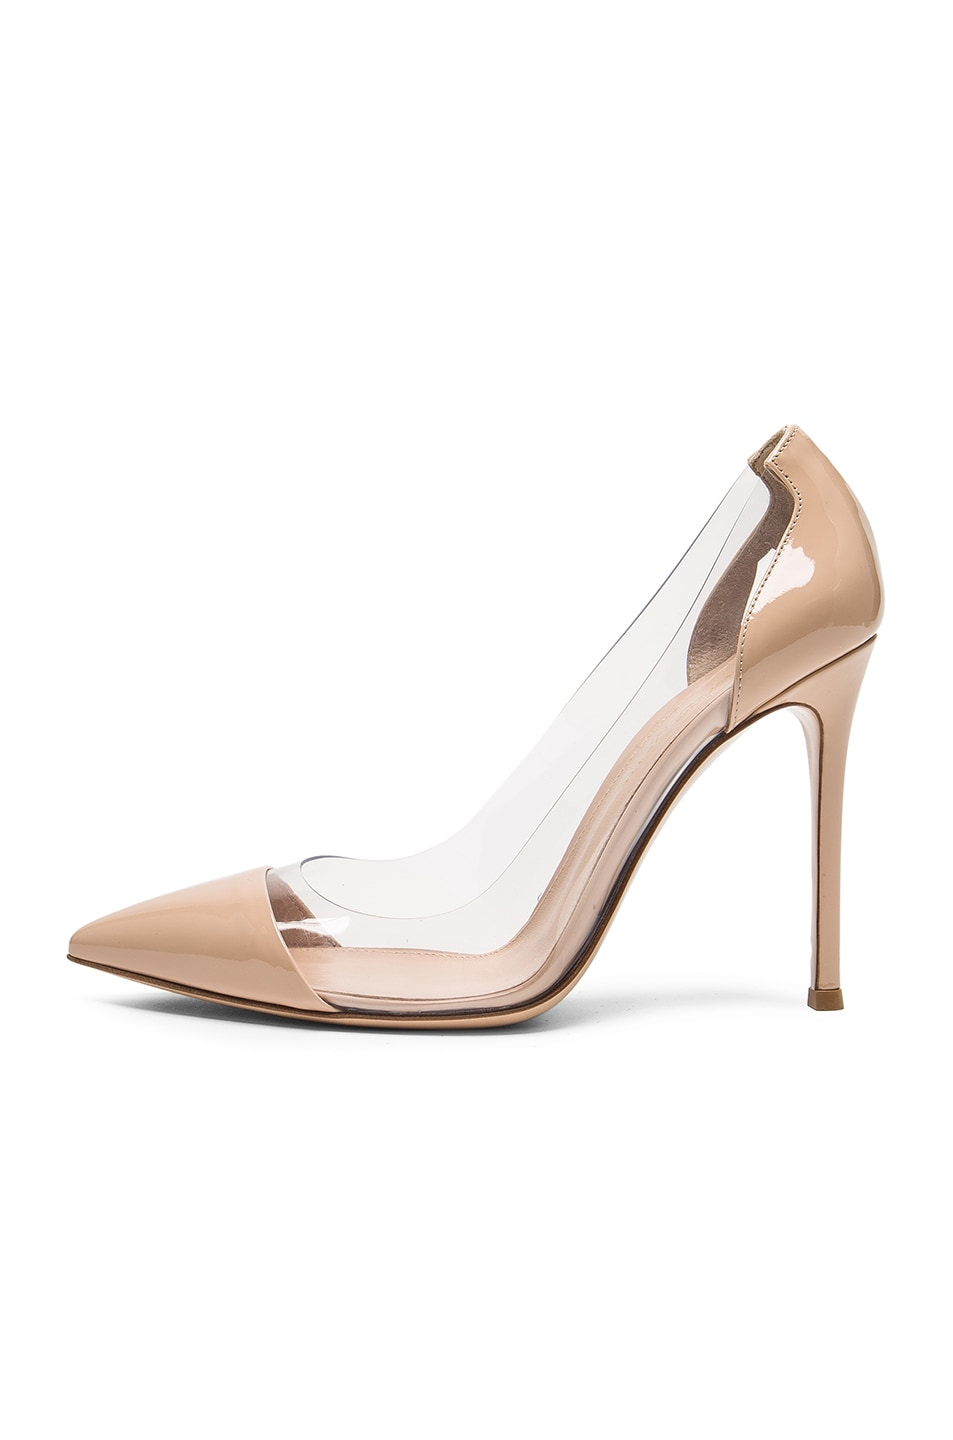 Image 5 of Gianvito Rossi Patent Leather Plexi Pumps in Nude